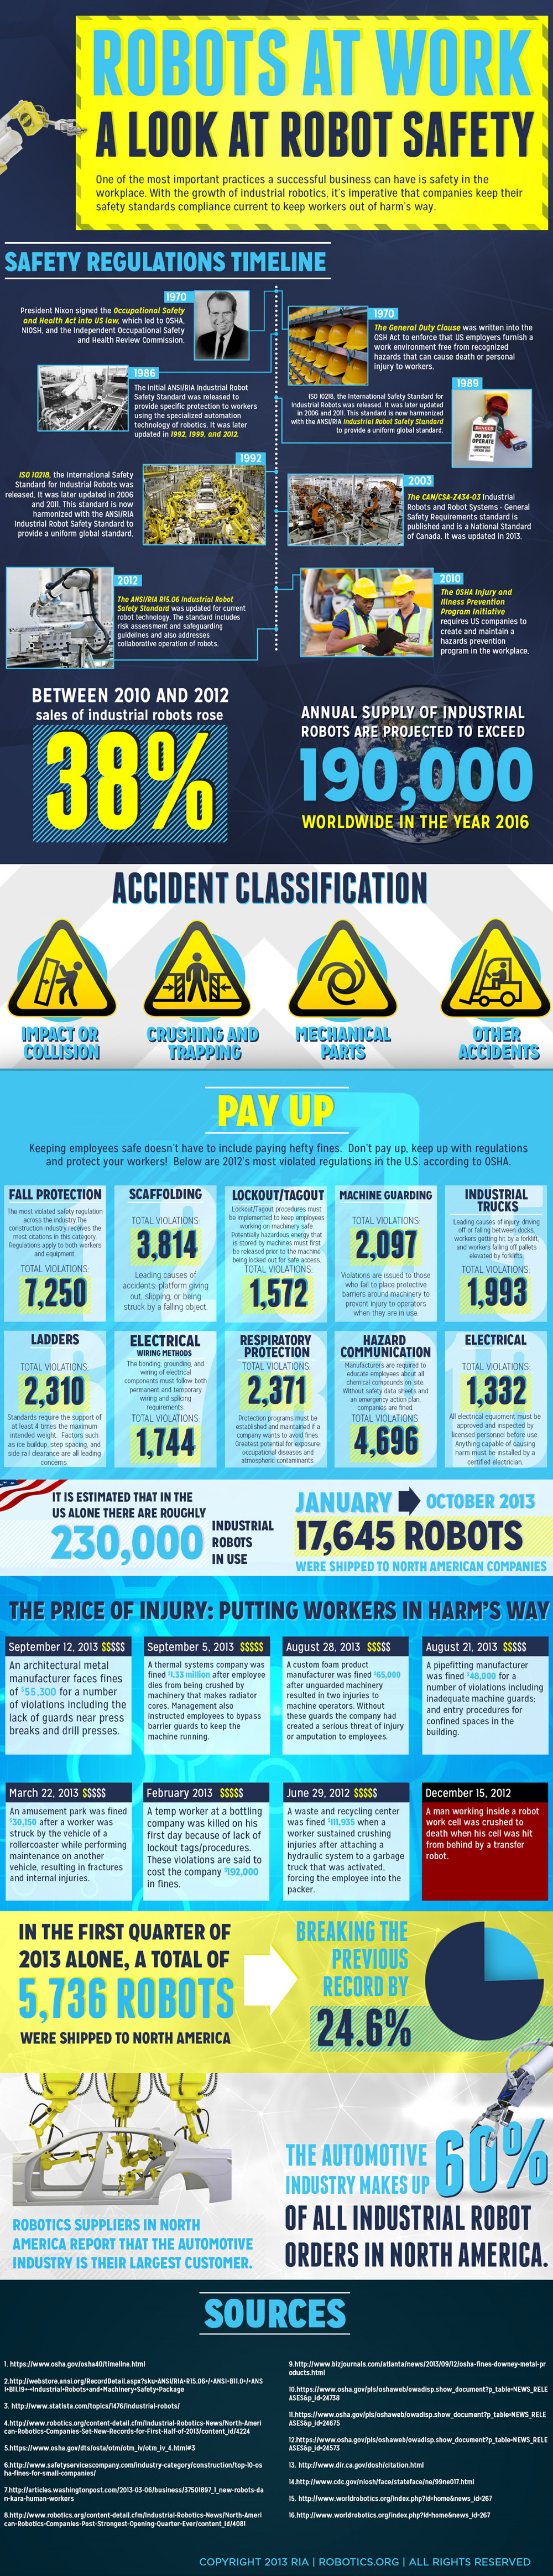 Robots At Work: A Look At Robotic Safety  Infographic